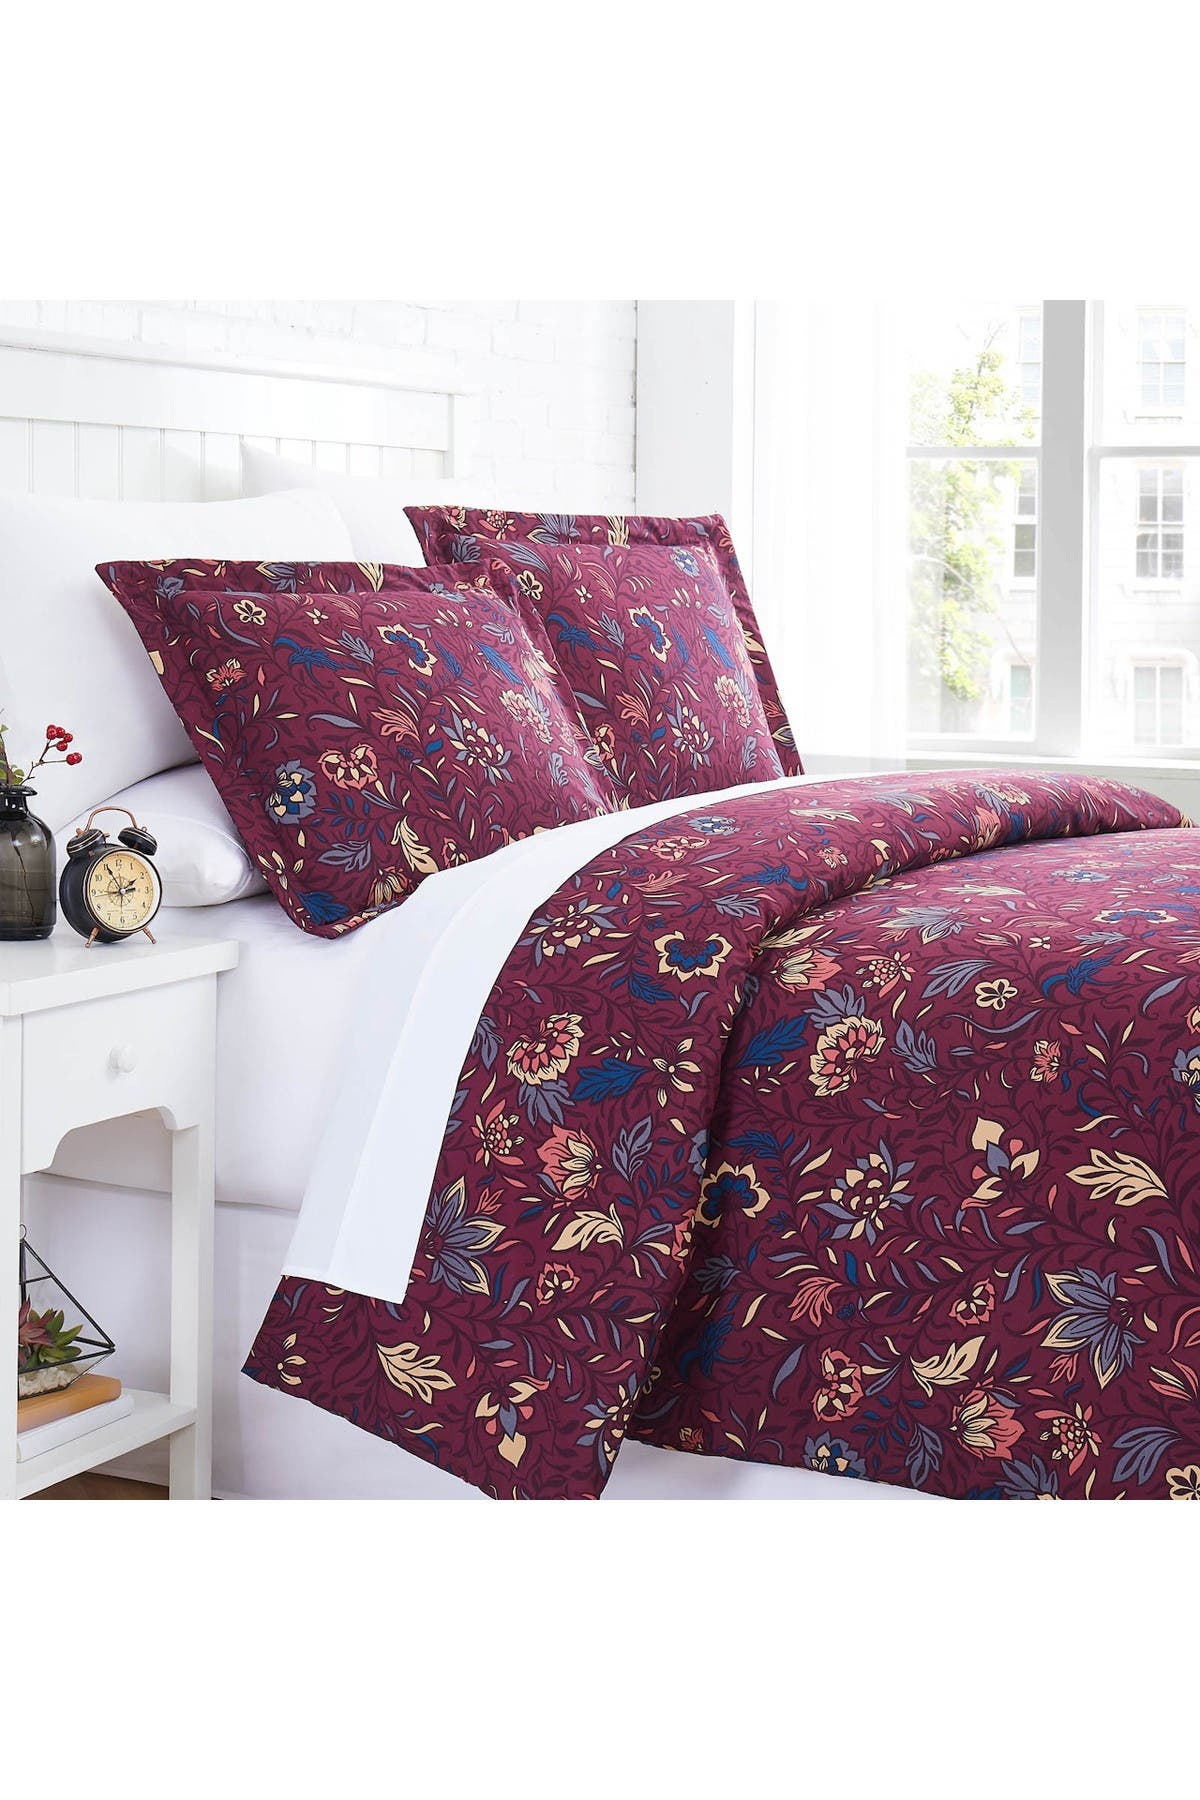 Image of SOUTHSHORE FINE LINENS Blooming Blossoms Duvet Cover Set - Red - Full/Queen